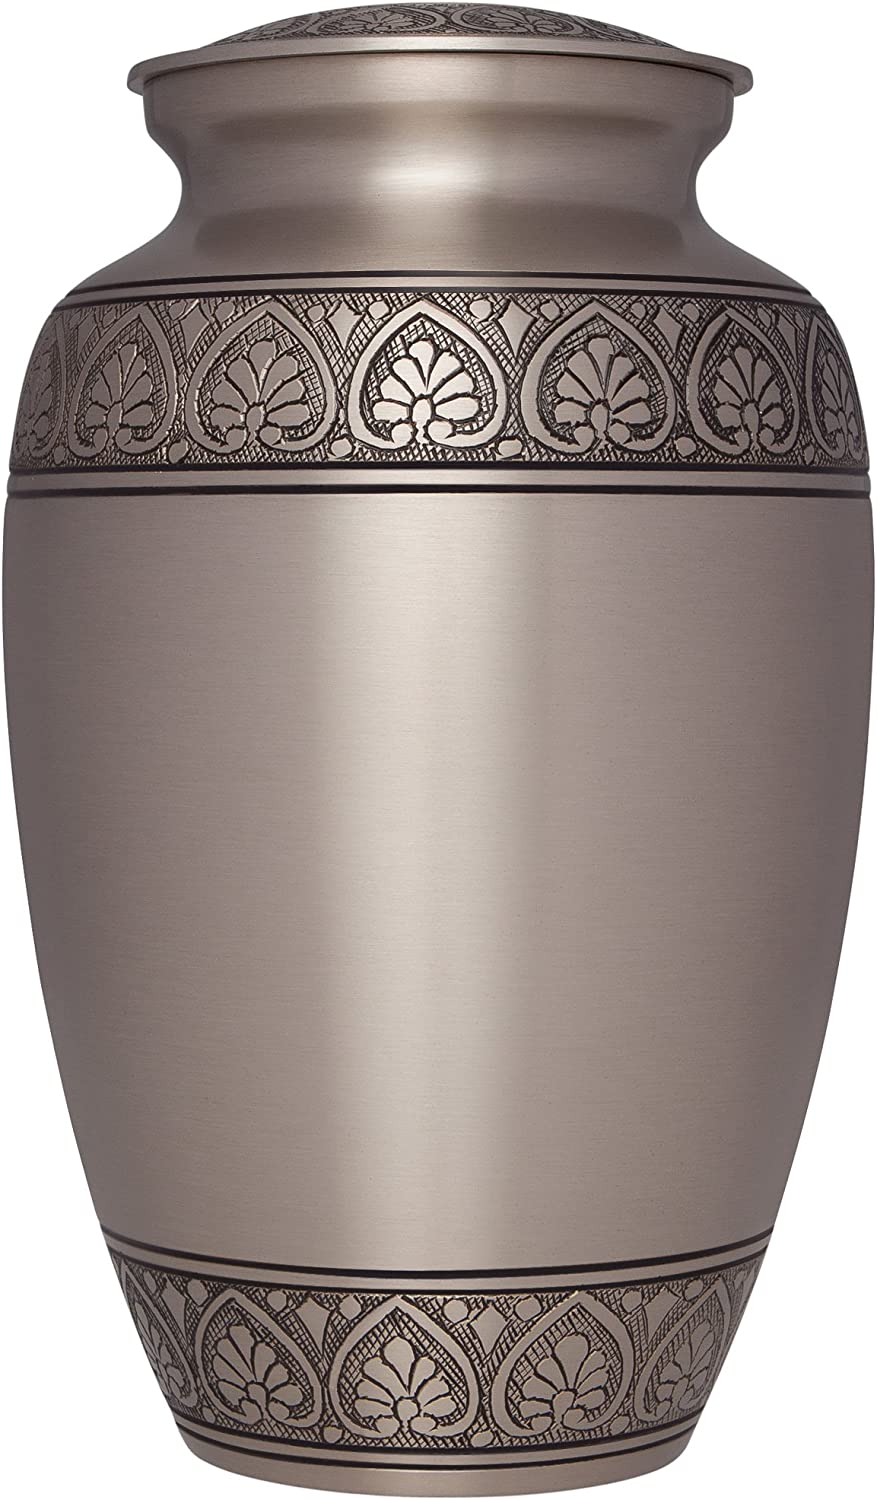 Silver Funeral Urn by Liliane Memorials - Cremation Urn for Human Ashes - Hand Made in Brass -Suitable for Cemetery Burial or Niche - Large Size fits remains of Adults up to 200 lbs- Silver Corinthian